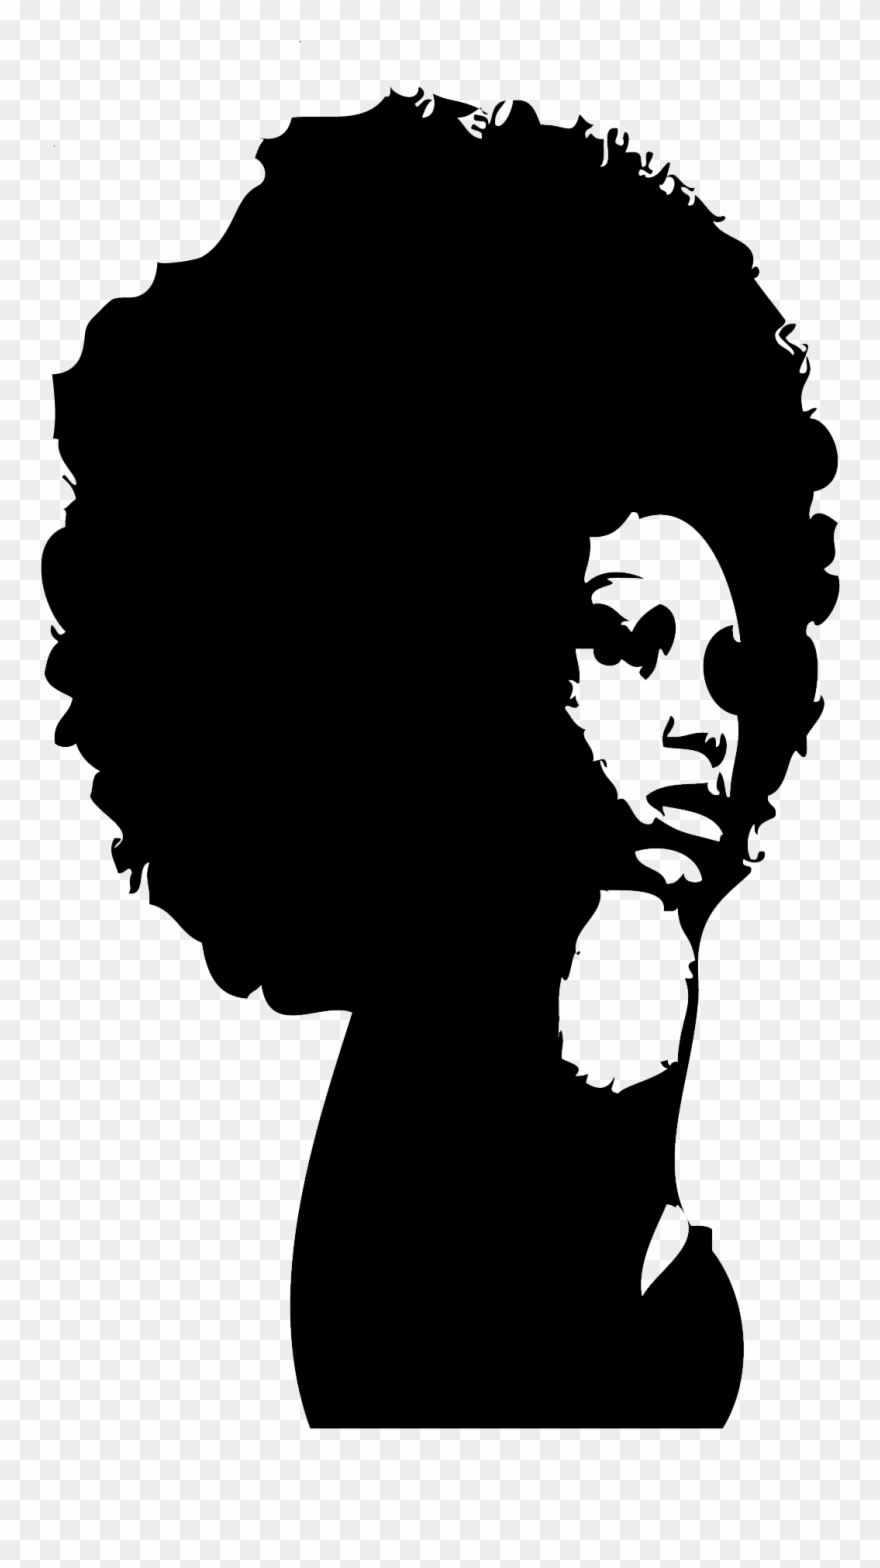 African american woman face clipart png transparent stock Popular Images - Black Woman Face Silhouette Clipart (#498388 ... png transparent stock